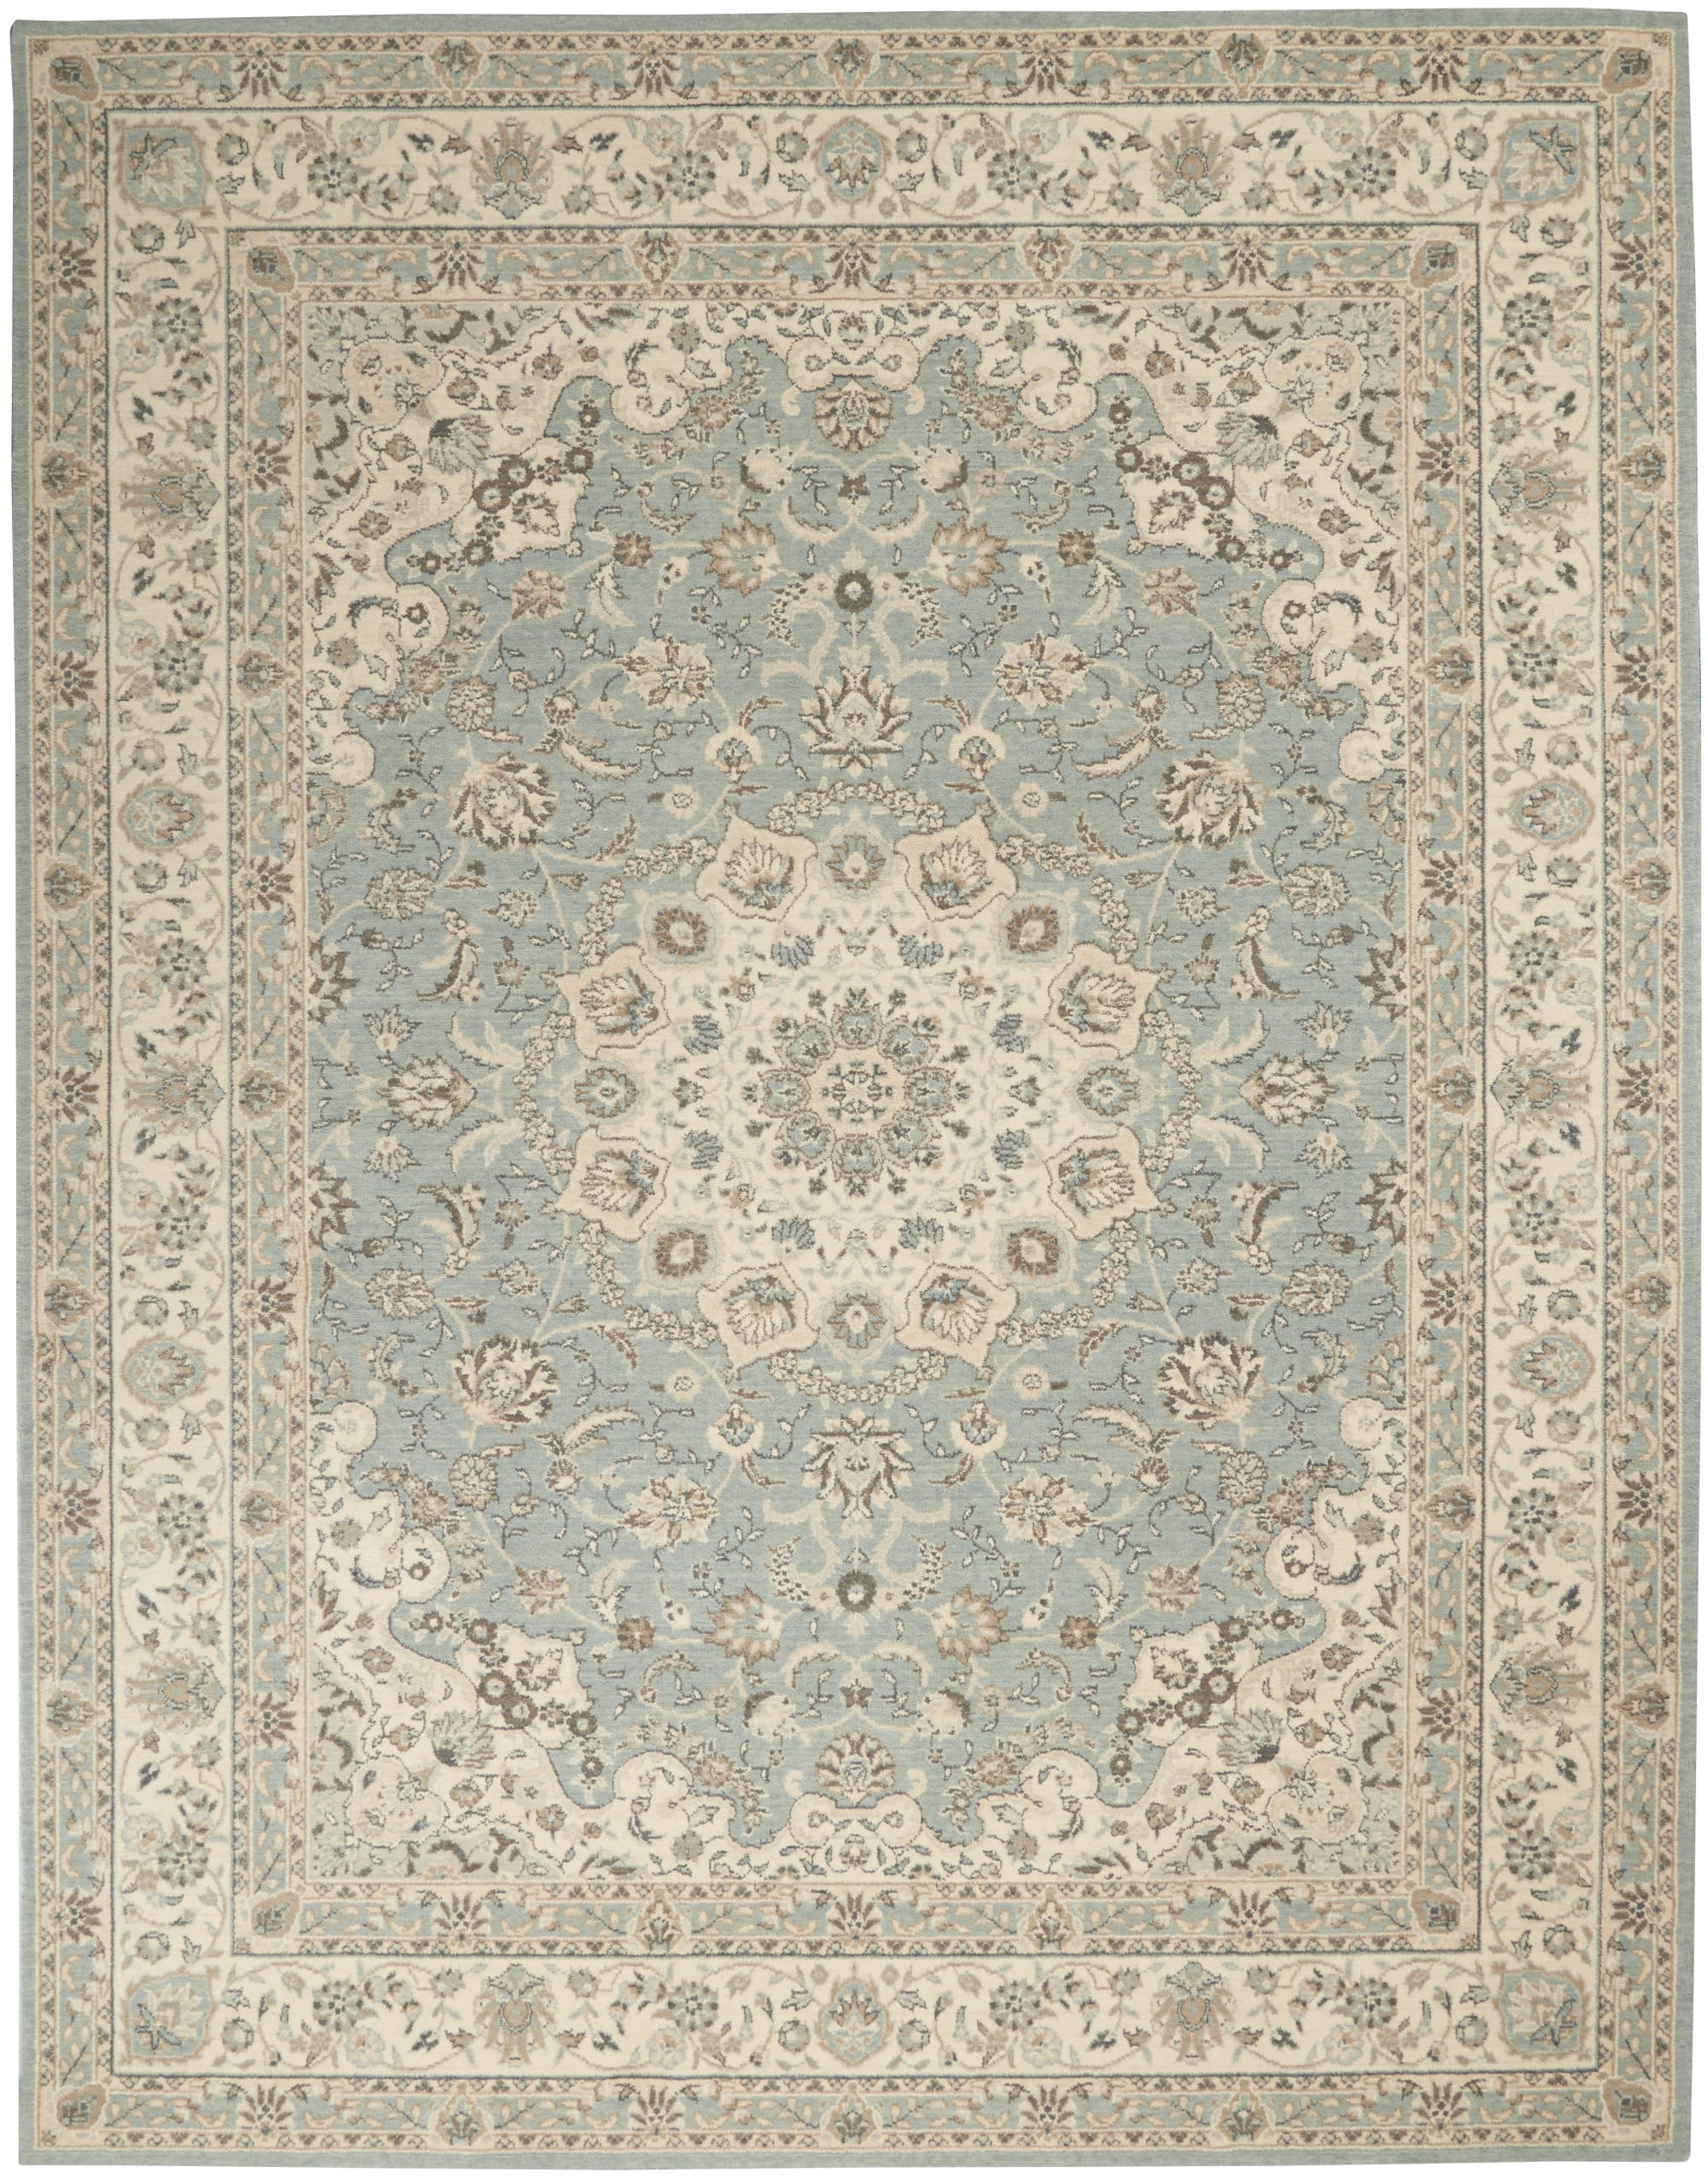 Living Treasures Rug LI15 Aqua/Ivory